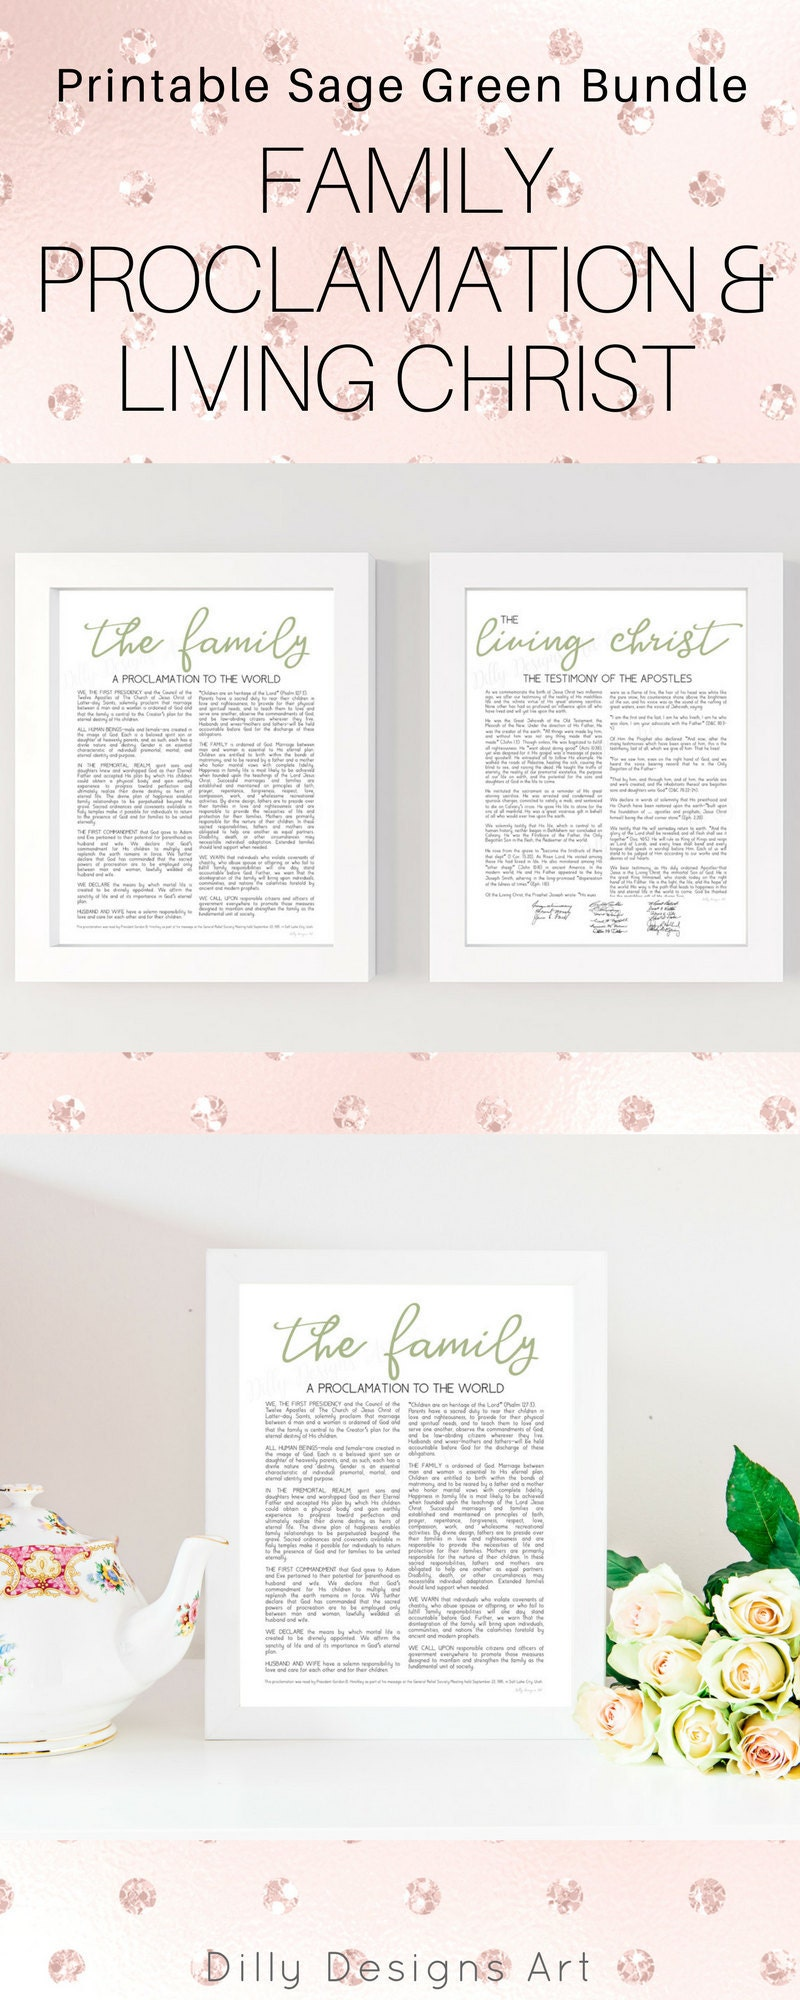 photograph regarding Family Proclamation Printable known as Sage Loved ones Proclamation and Dwelling Christ Printables